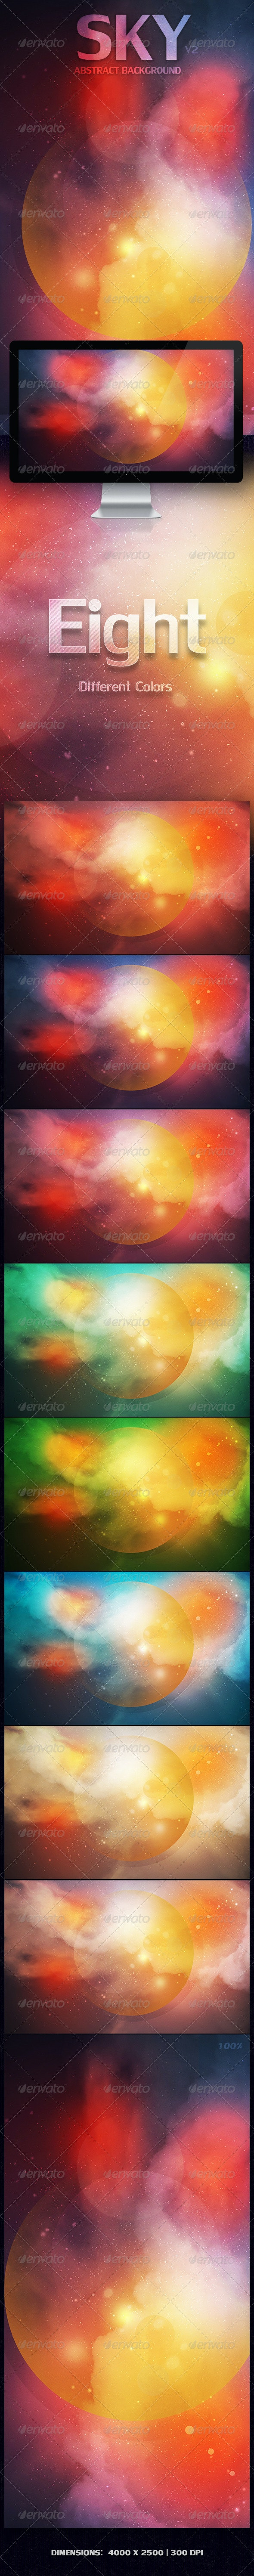 SKY Abstract Background    V2 - Abstract Backgrounds